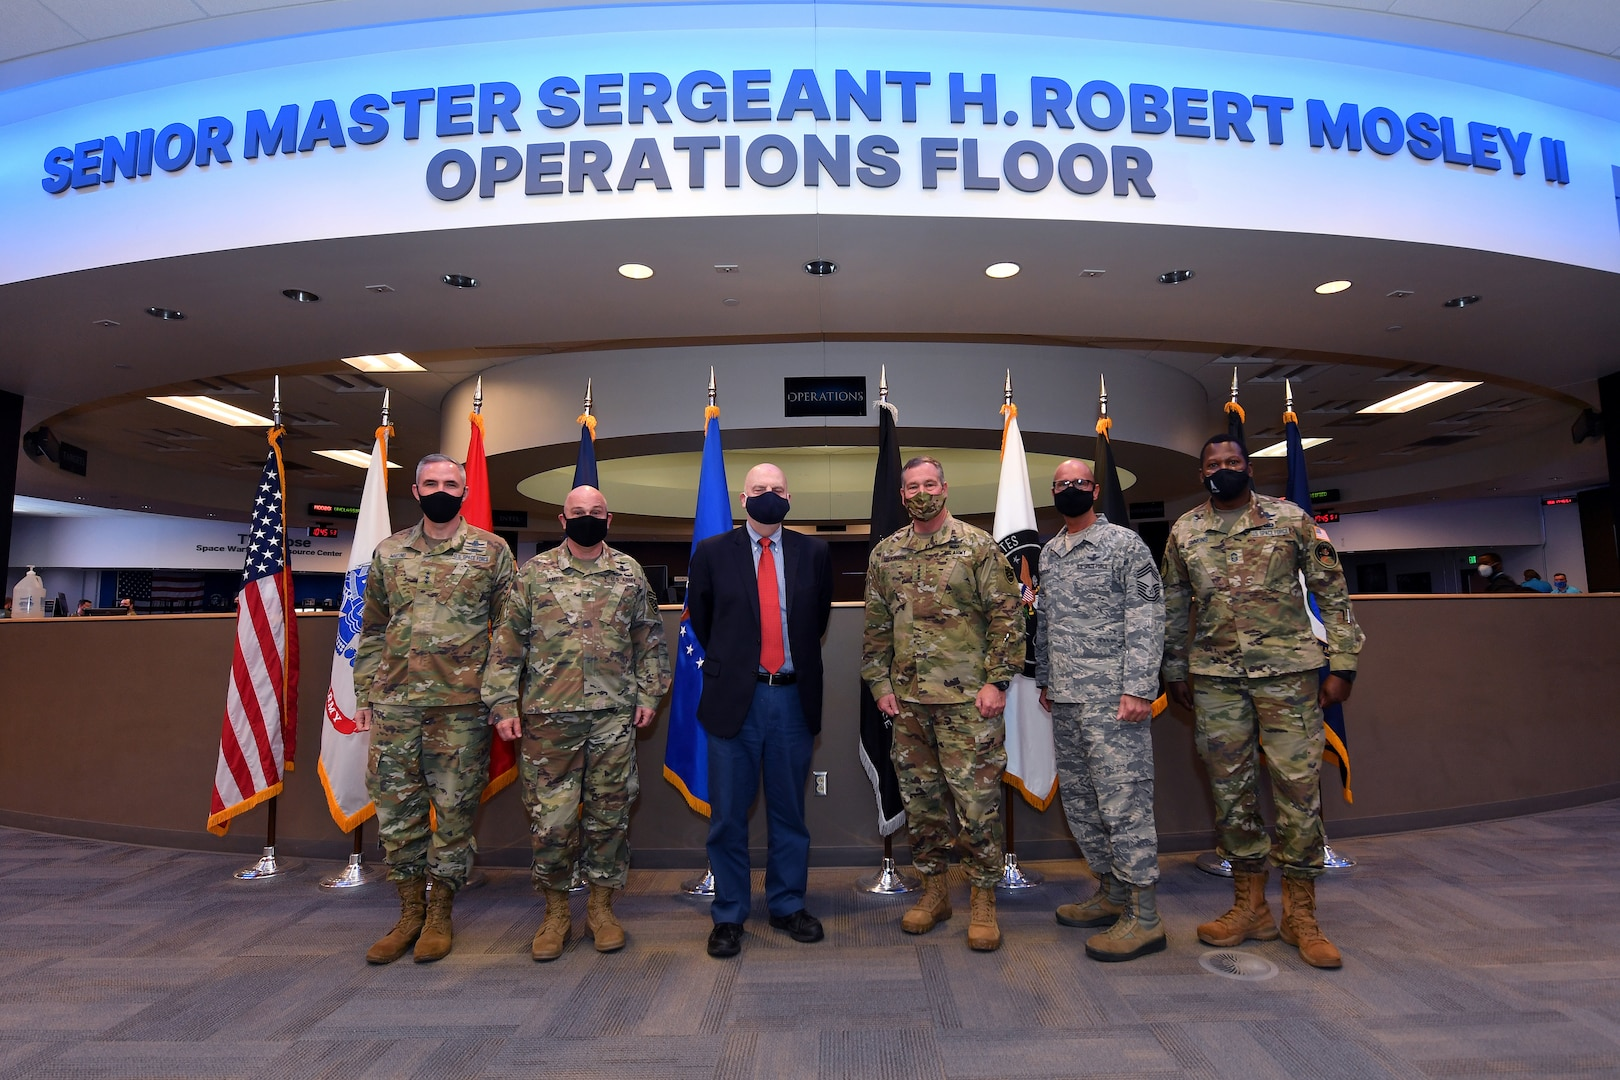 Military leaders gather to discuss protect and defend mission.